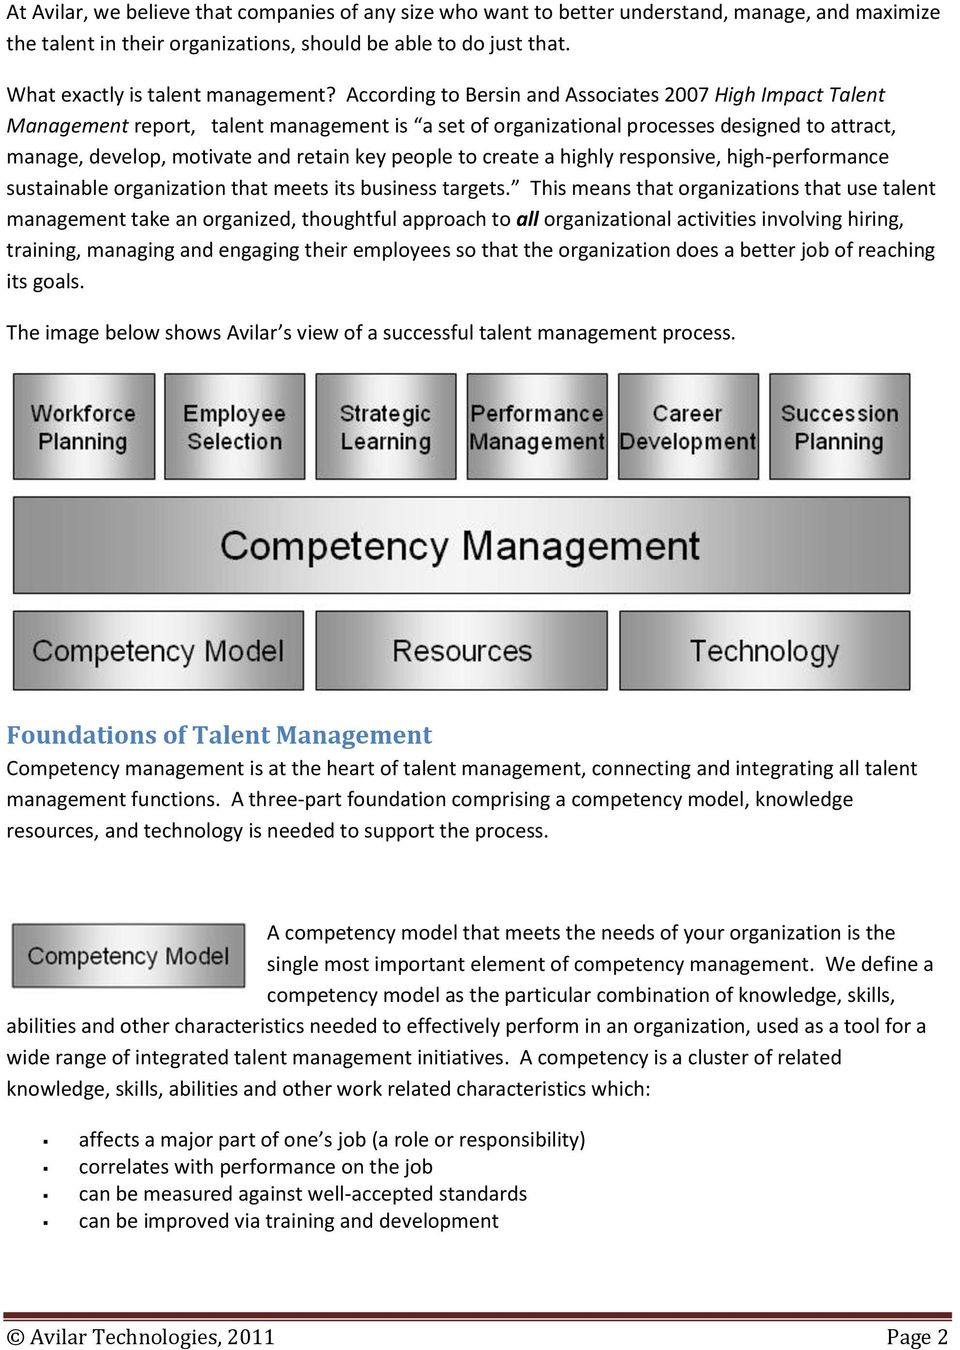 According to Bersin and Associates 2007 High Impact Talent Management report, talent management is a set of organizational processes designed to attract, manage, develop, motivate and retain key